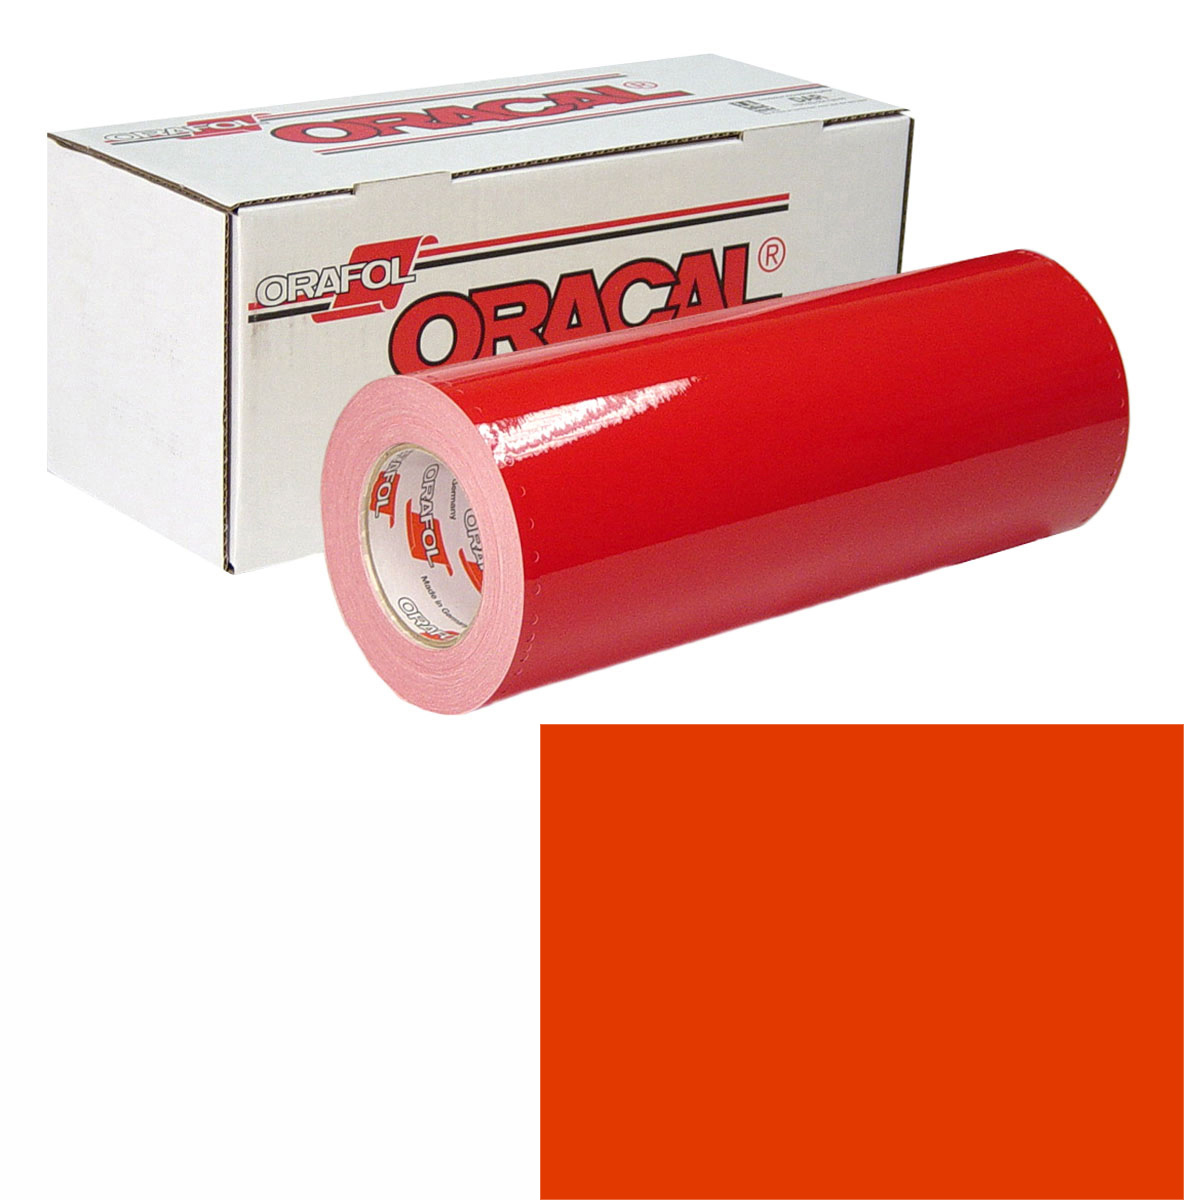 ORACAL 951 Unp 48in X 10yd 335 Mars Red